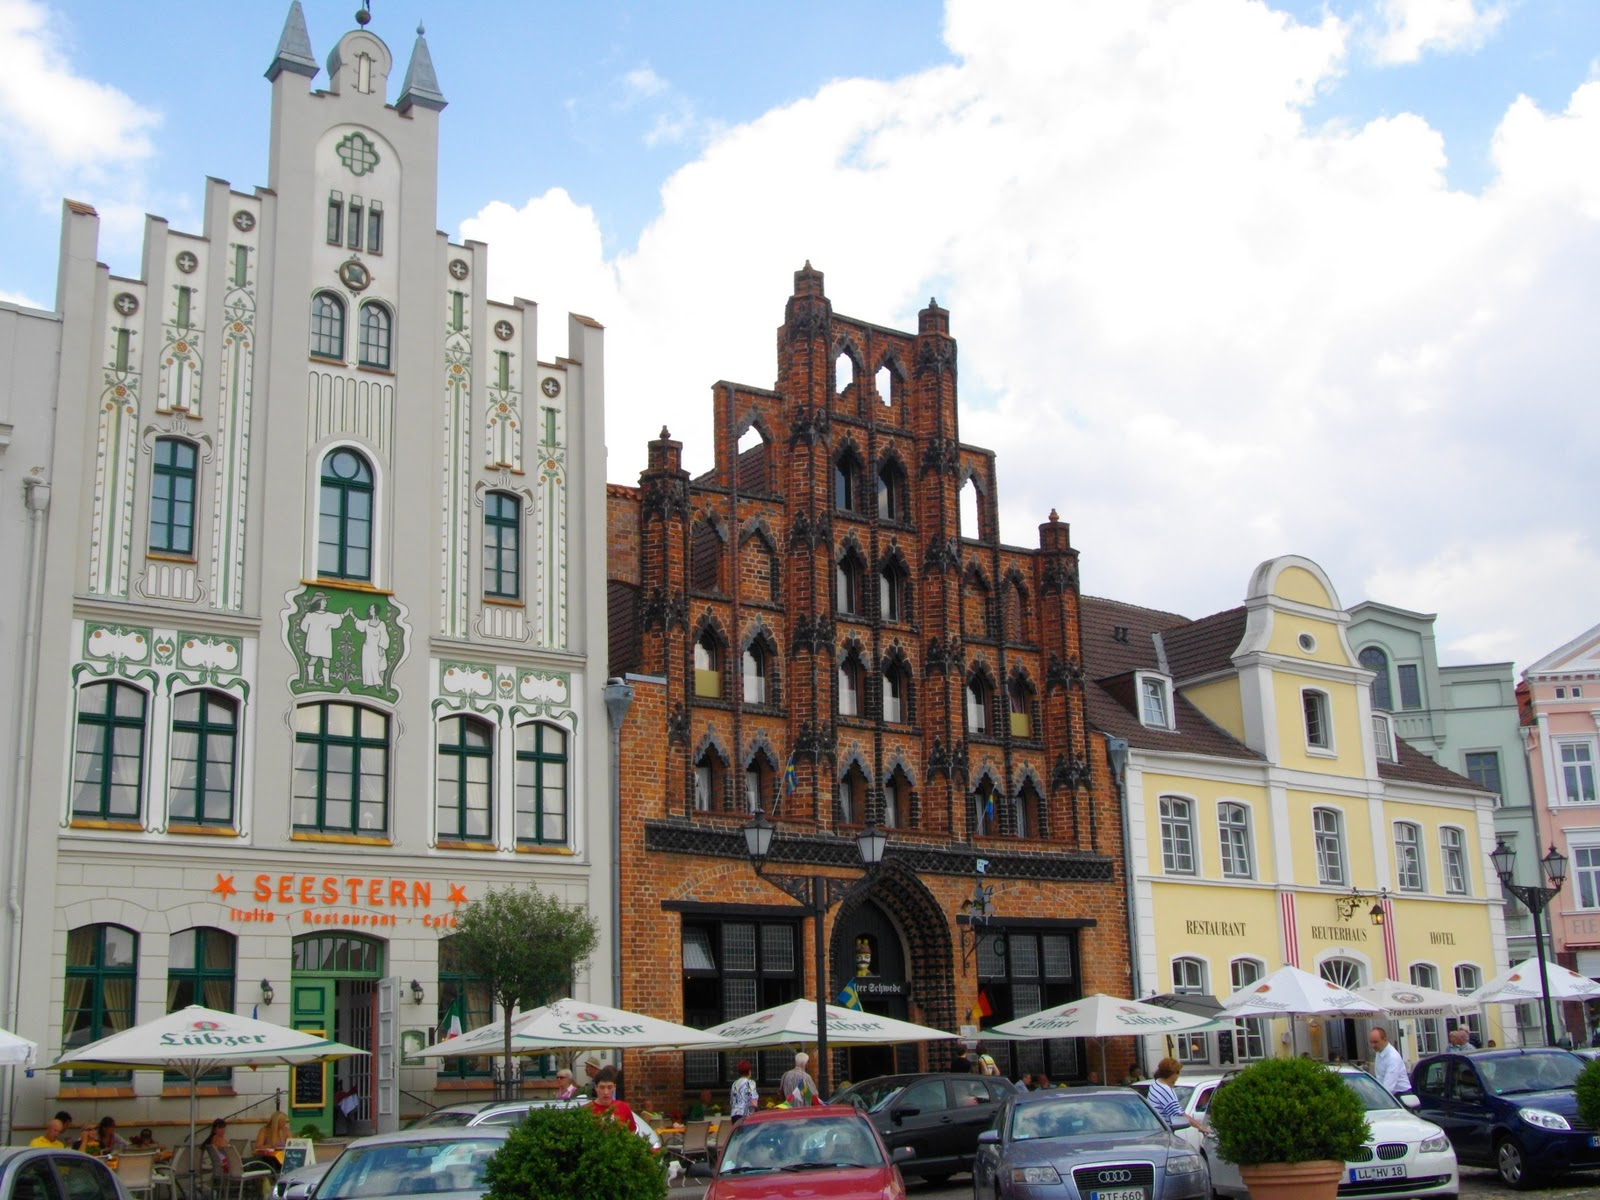 Wismar Germany  city images : Trip to Wismar, Germany part 3 | Life in Luxembourg